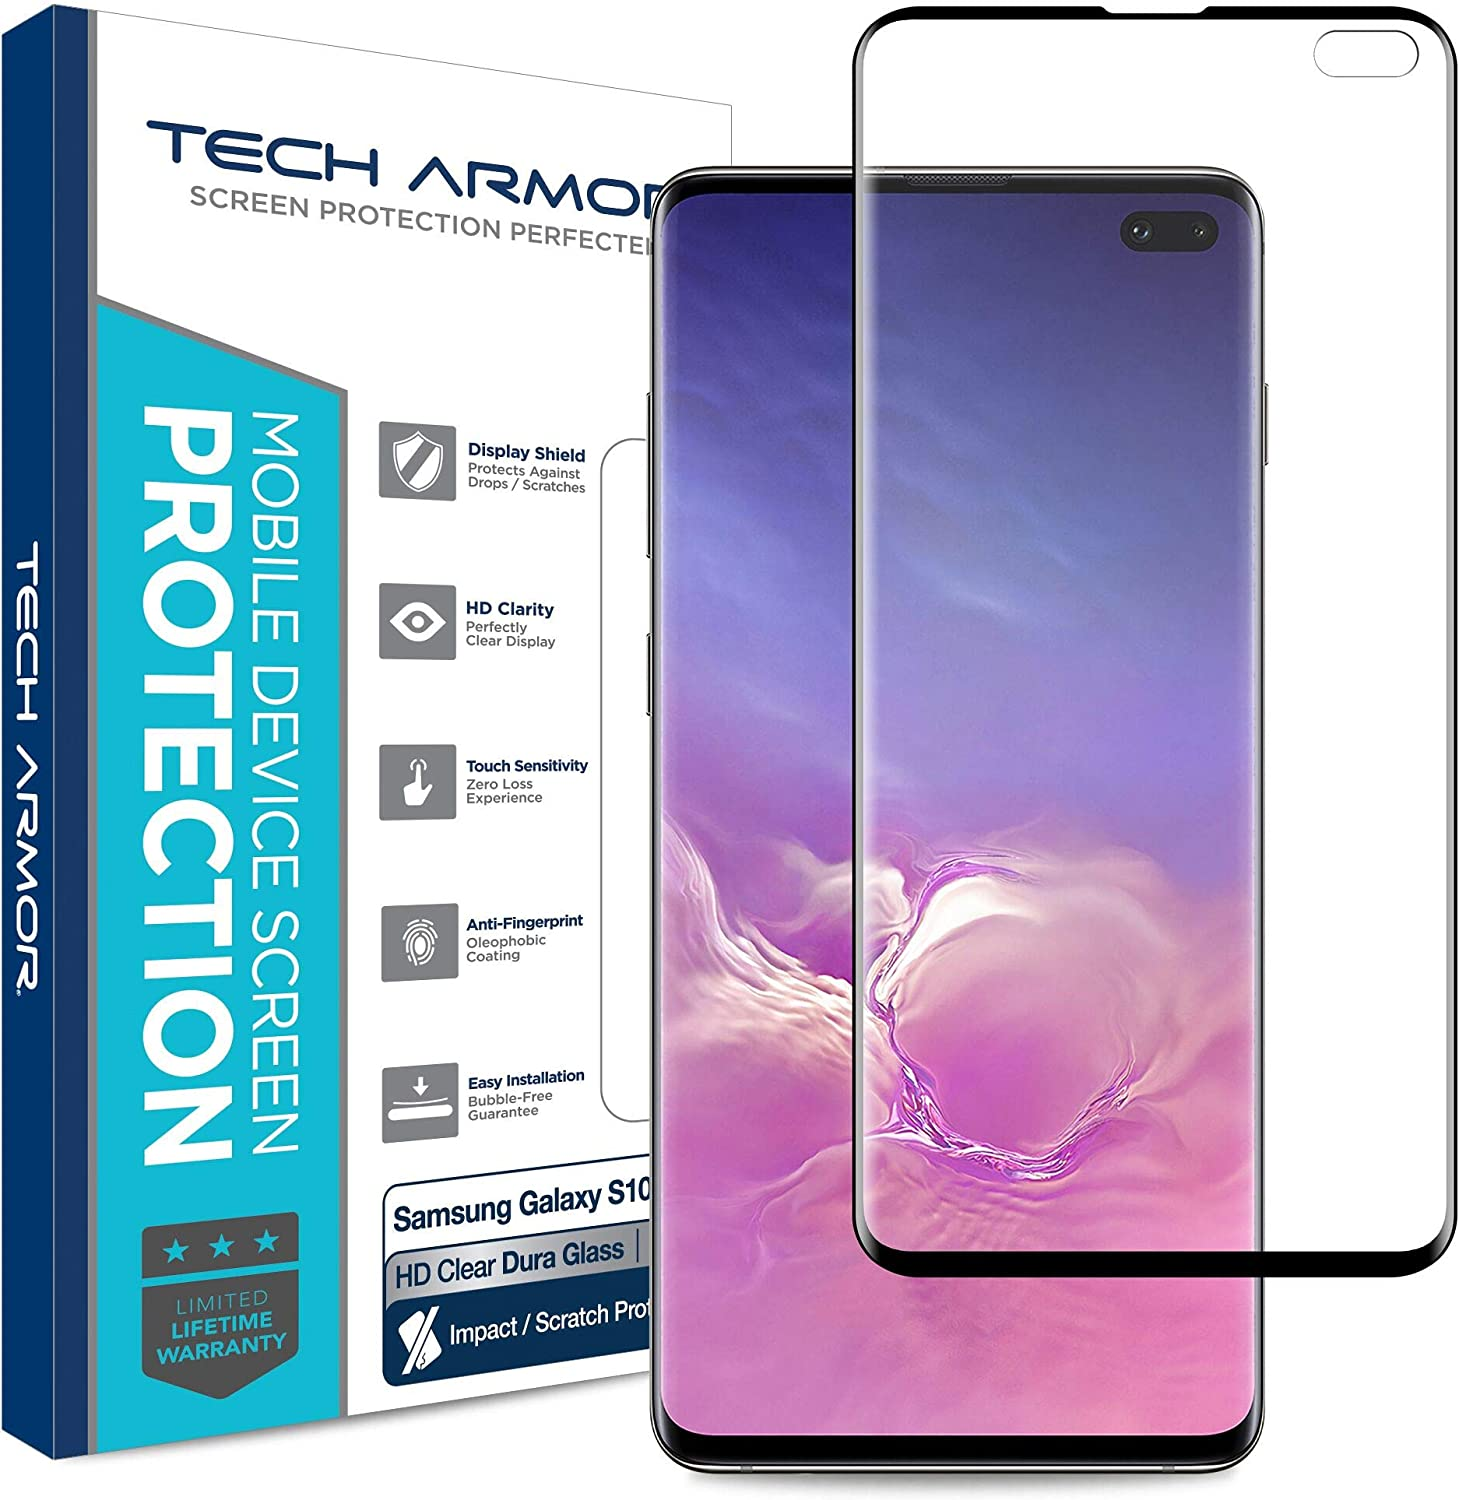 1-Pack Tech Armor Dura Glass Screen Protector Designed for Samsung Galaxy S10 Plus Scratch and Impact Protection with Easy Installation Tool - Ultra-Thin Hybrid Glass Case-Friendly